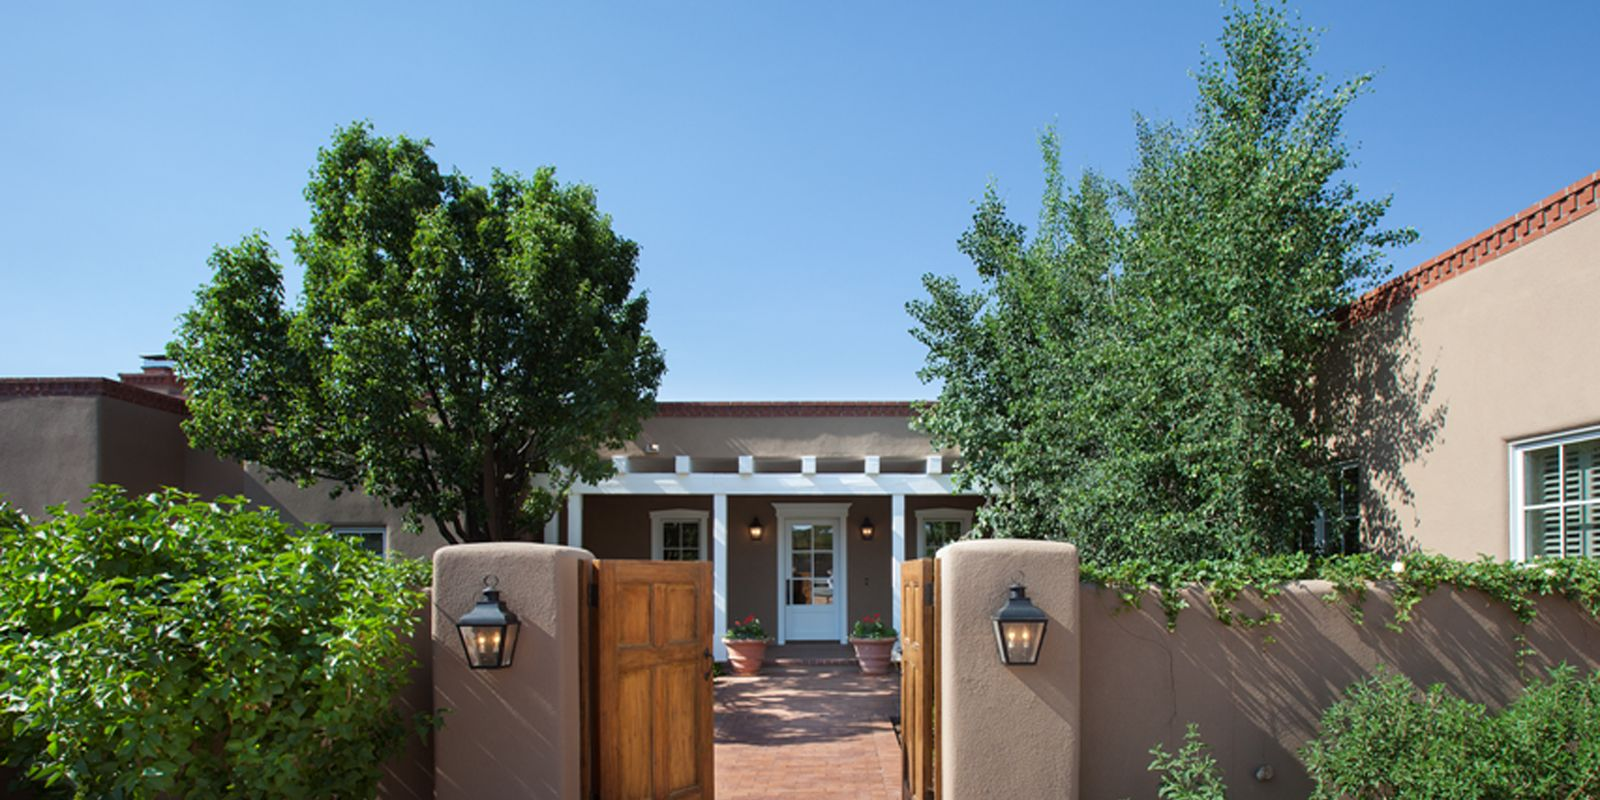 Santa fe new mexico adobe home southwestern decorating ideas for Santa fe home design